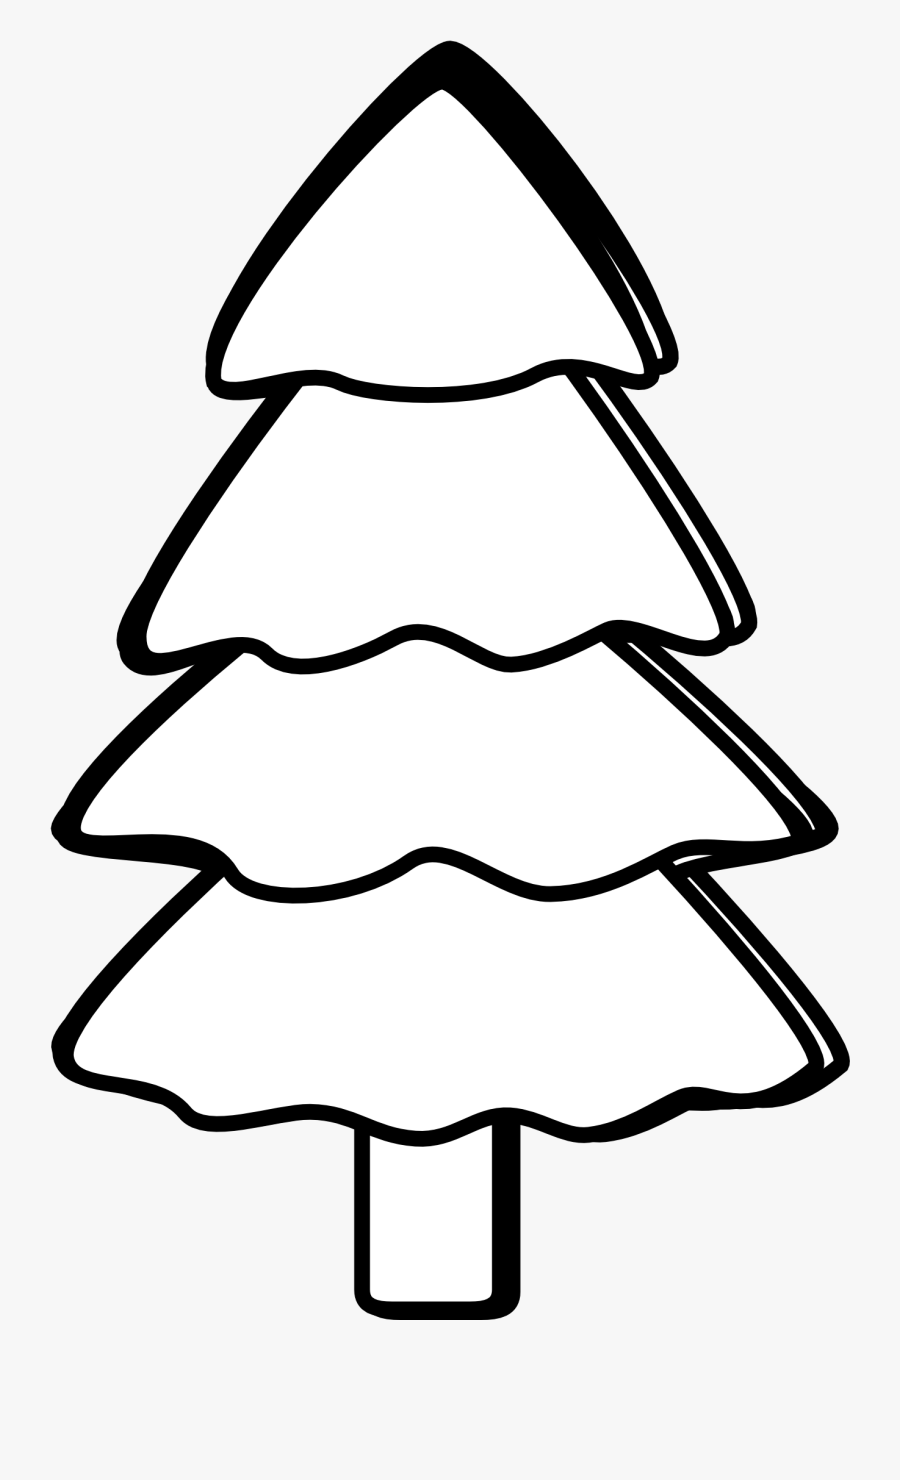 Black And White Christmas Tree Clipart Free - Tree Picture Clip Art Black And White, Transparent Clipart